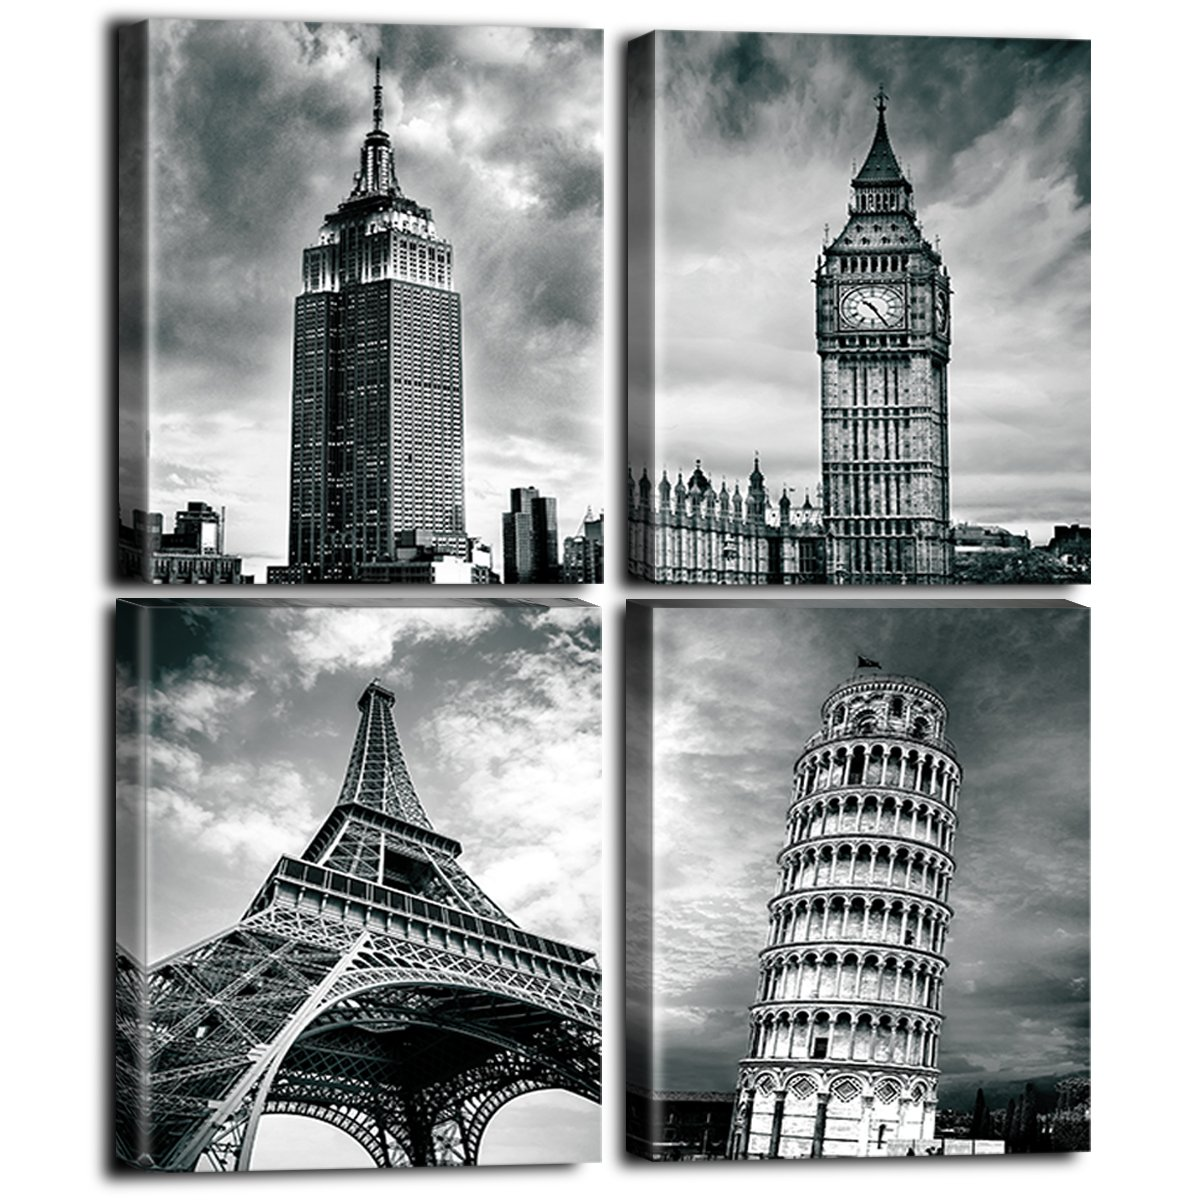 Architectures wall art paris home decor modern giclee canvas prints photos 4 panels black white buildings world famous attractions landscape landmark